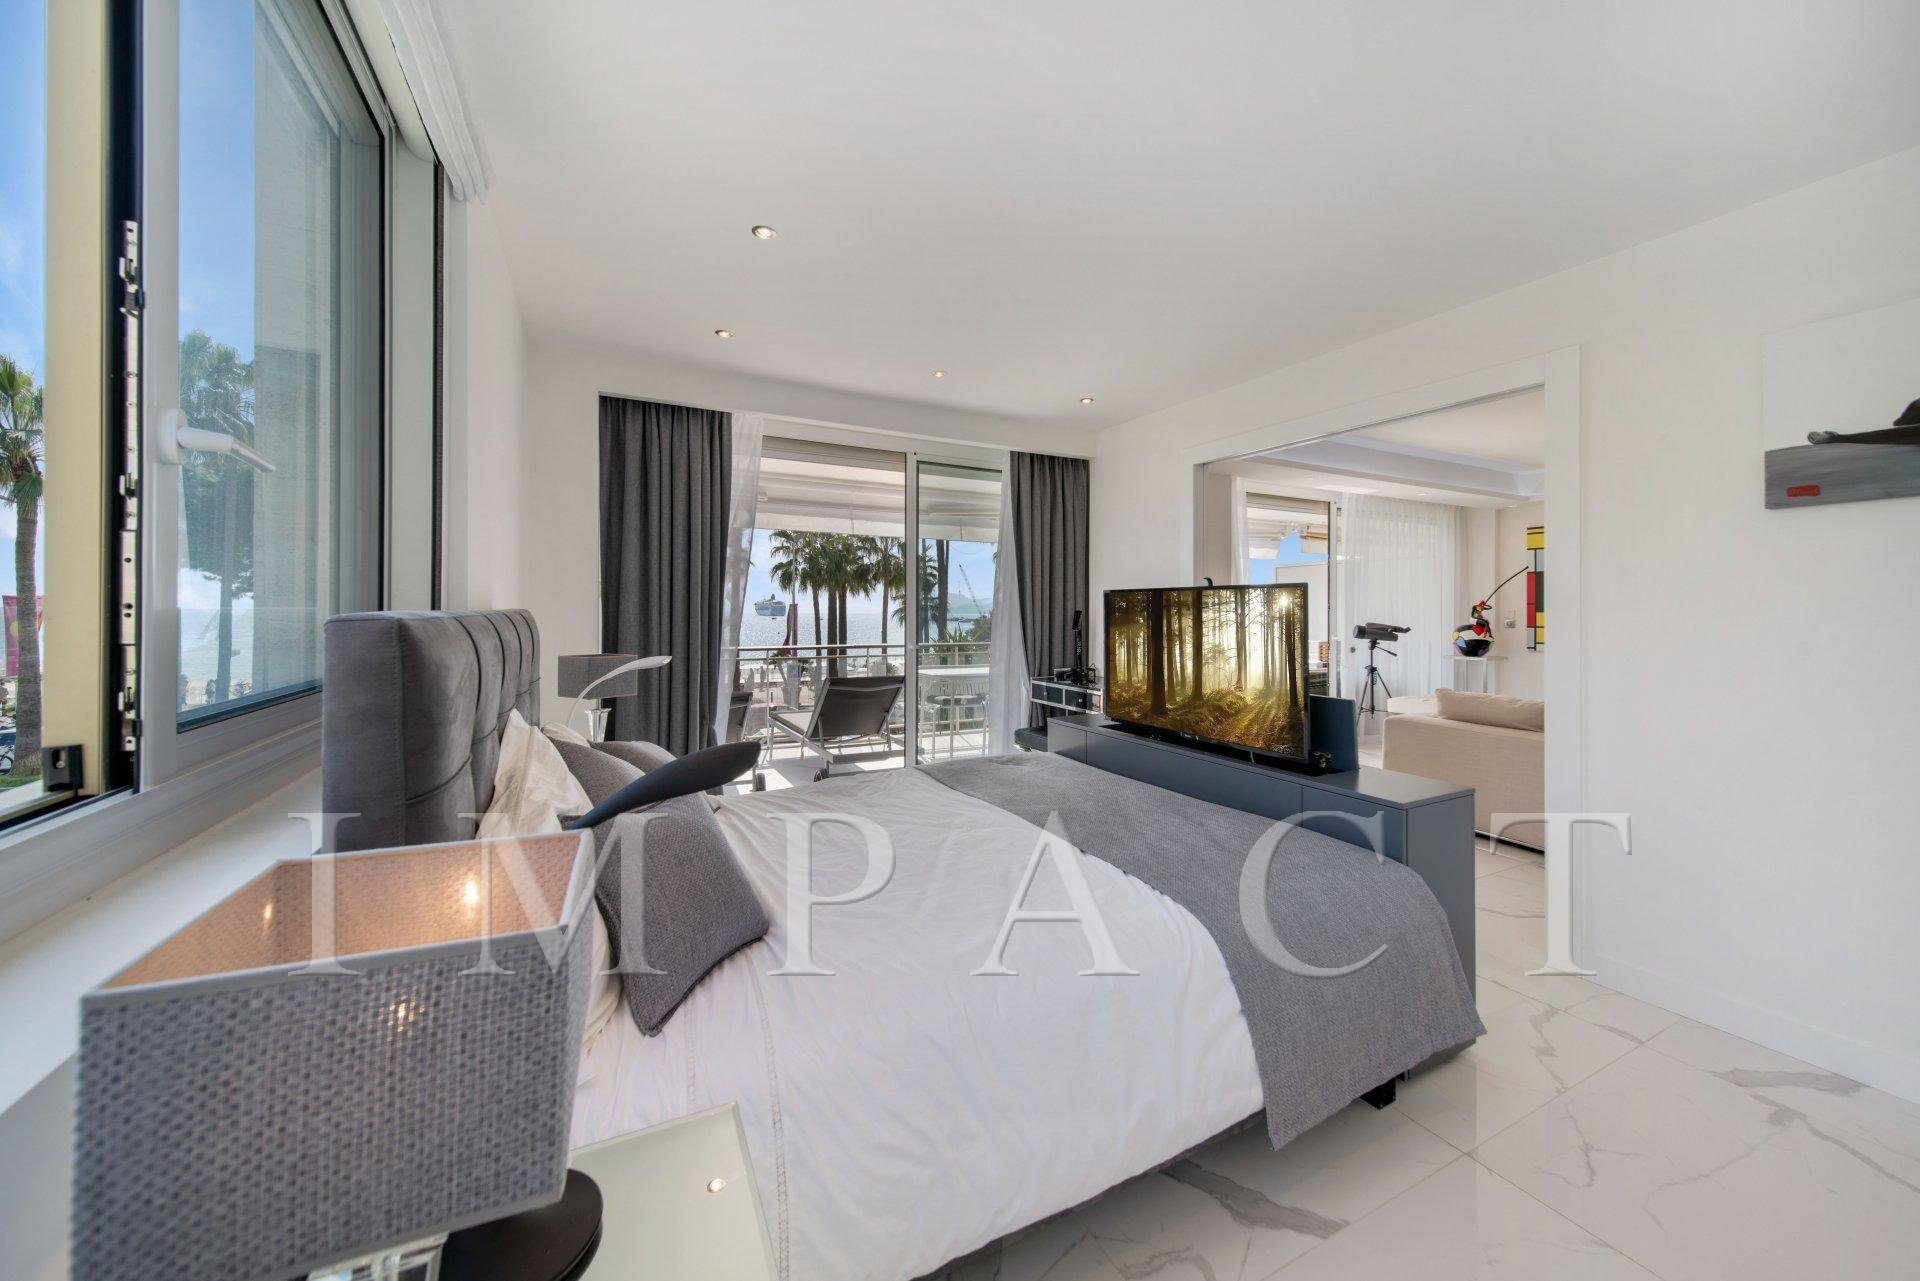 Cannes Croisette 2 master suites apartment facing the sea in the garden of the Grand Hôtel